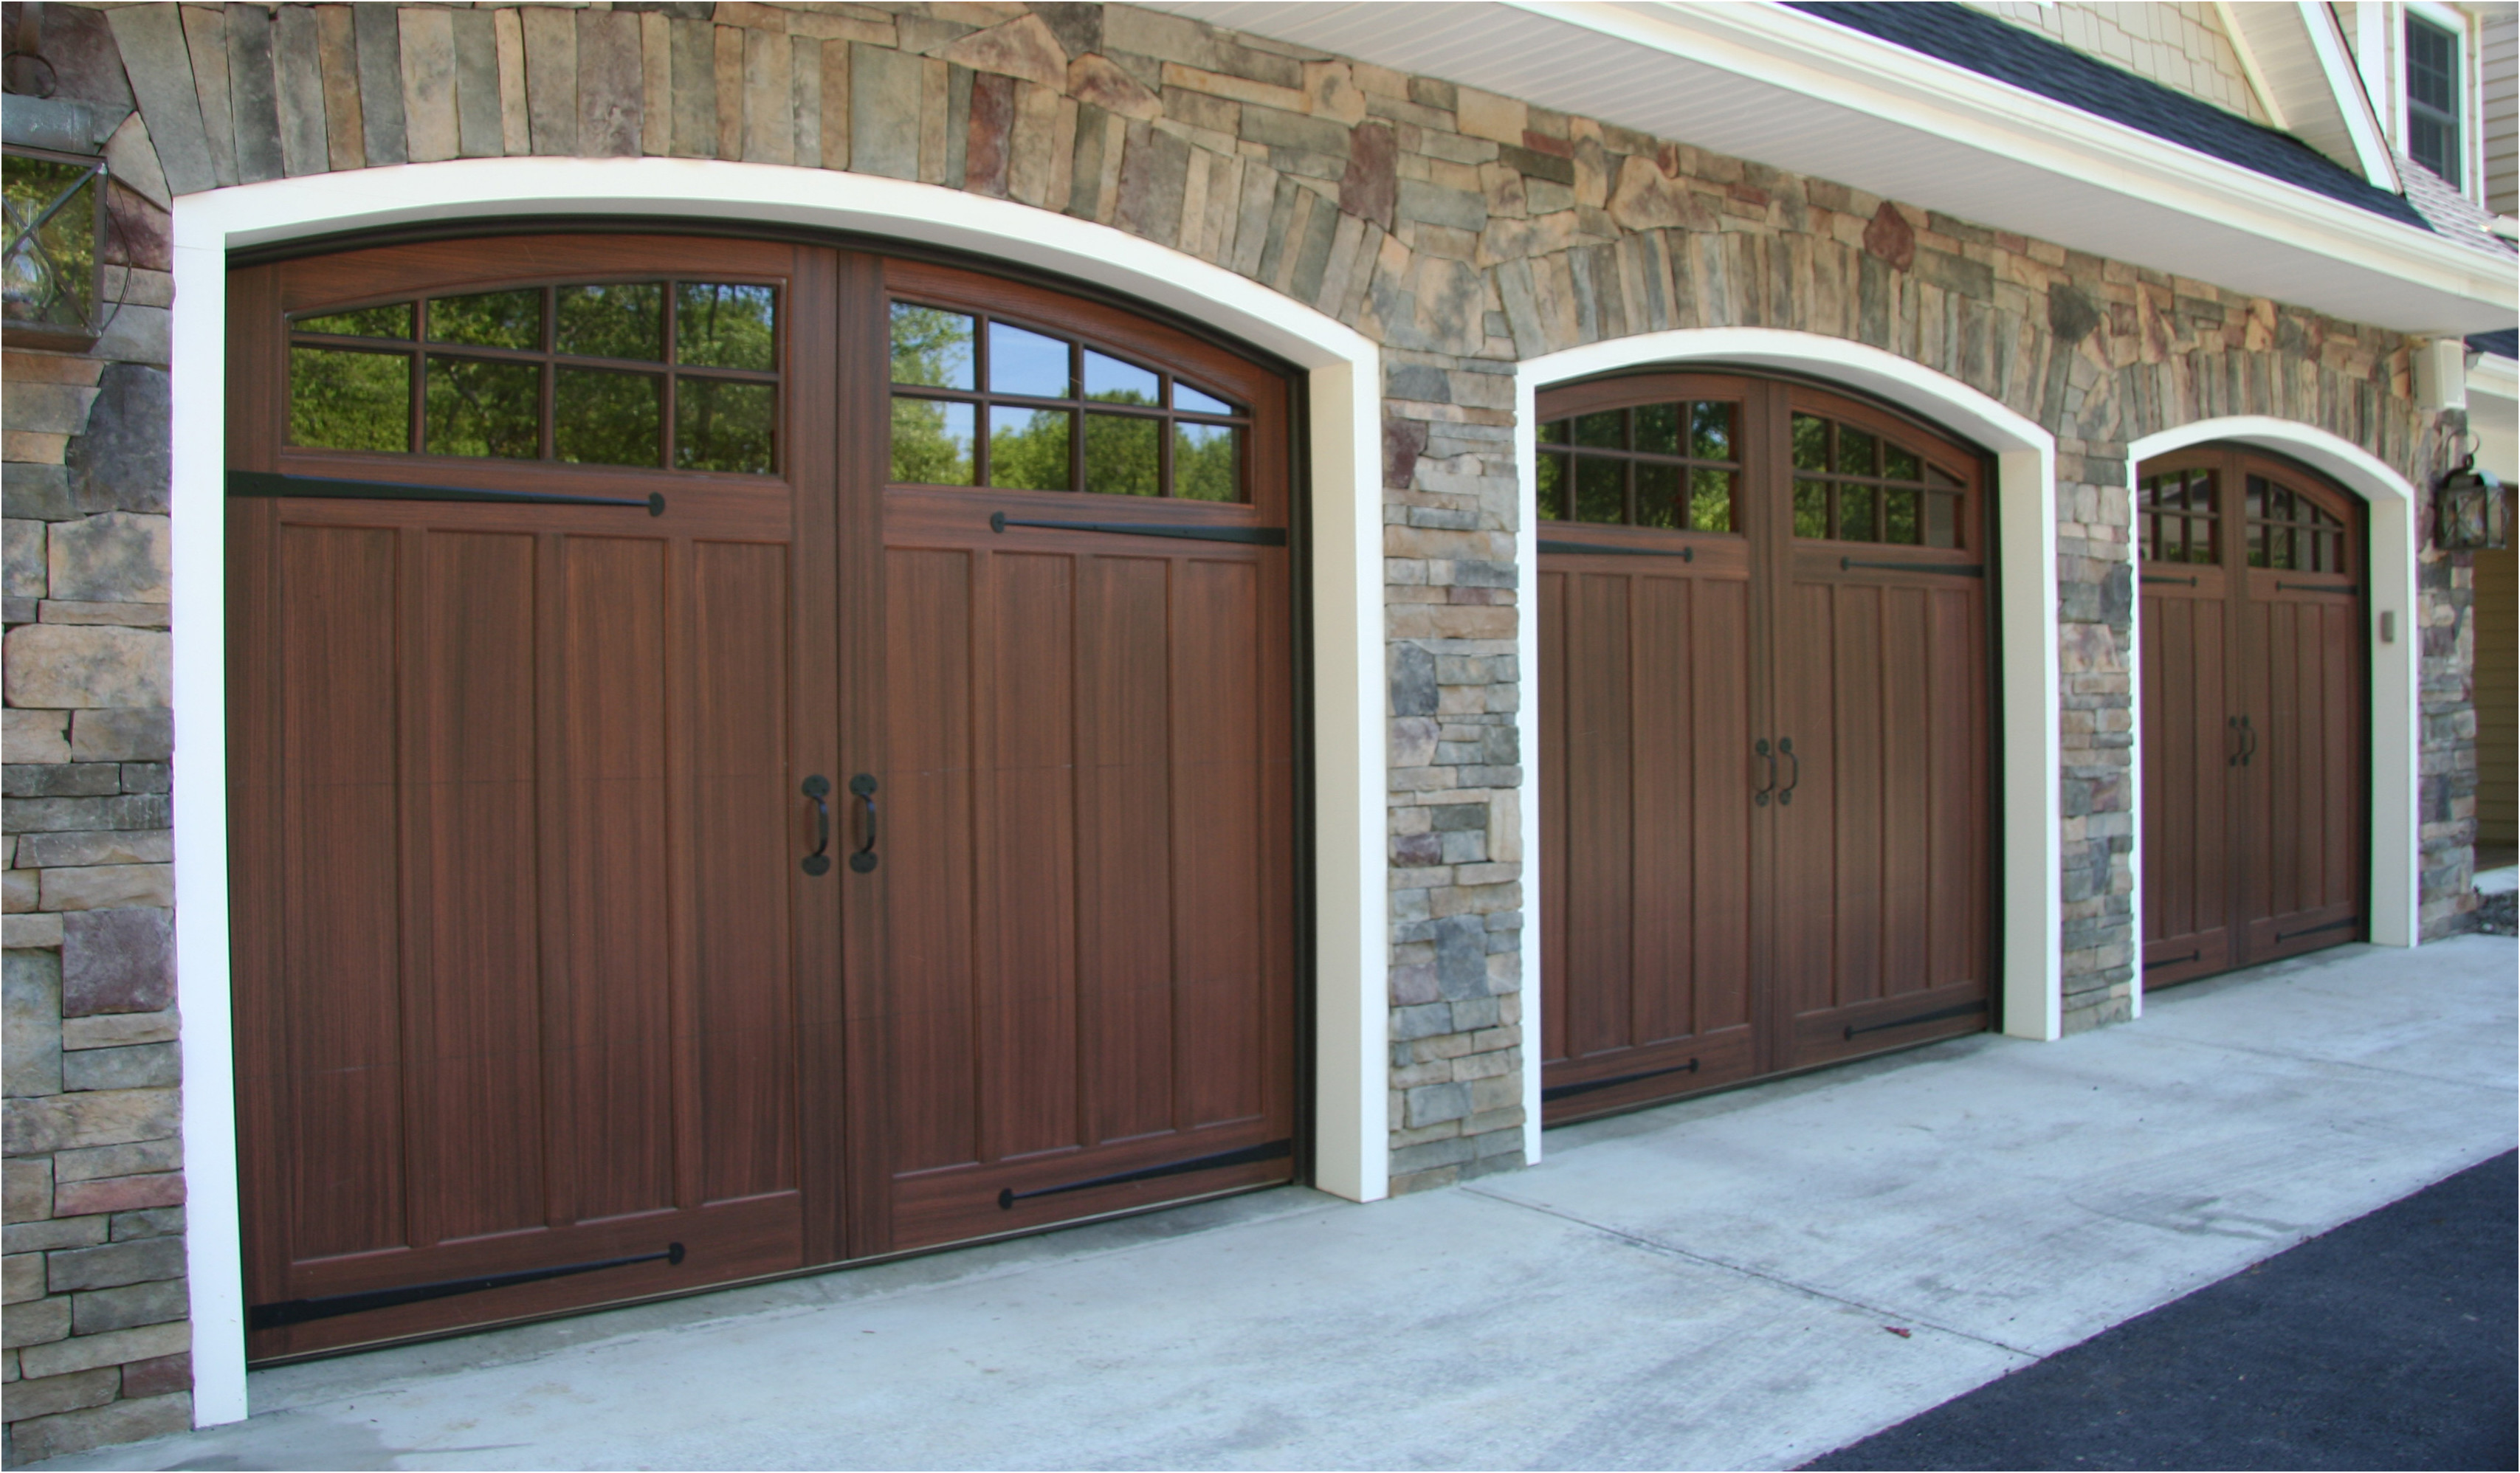 Best Of Steel Garage Doors that Look Like Wood